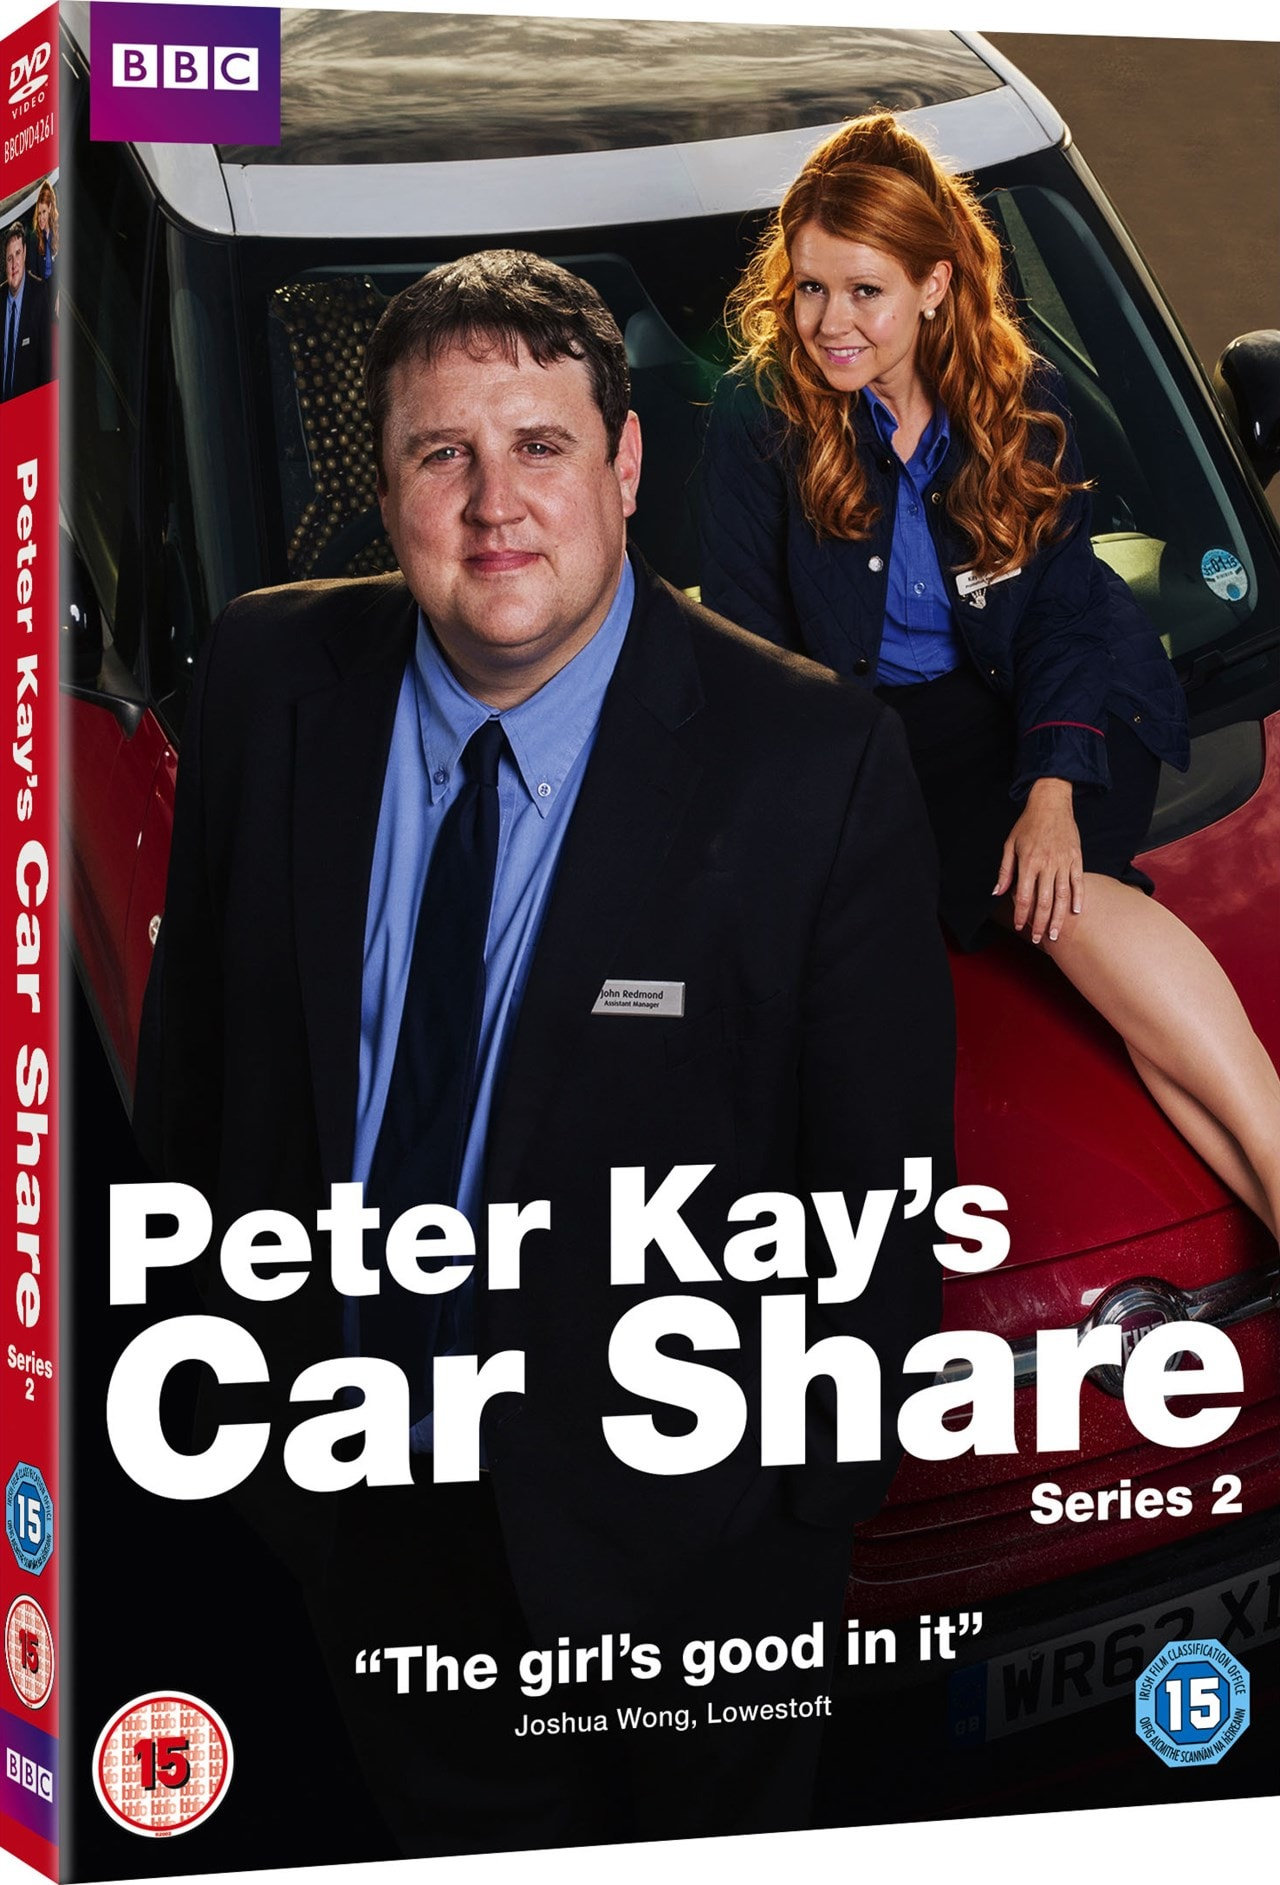 Peter Kay's Car Share: Series 2 - 2